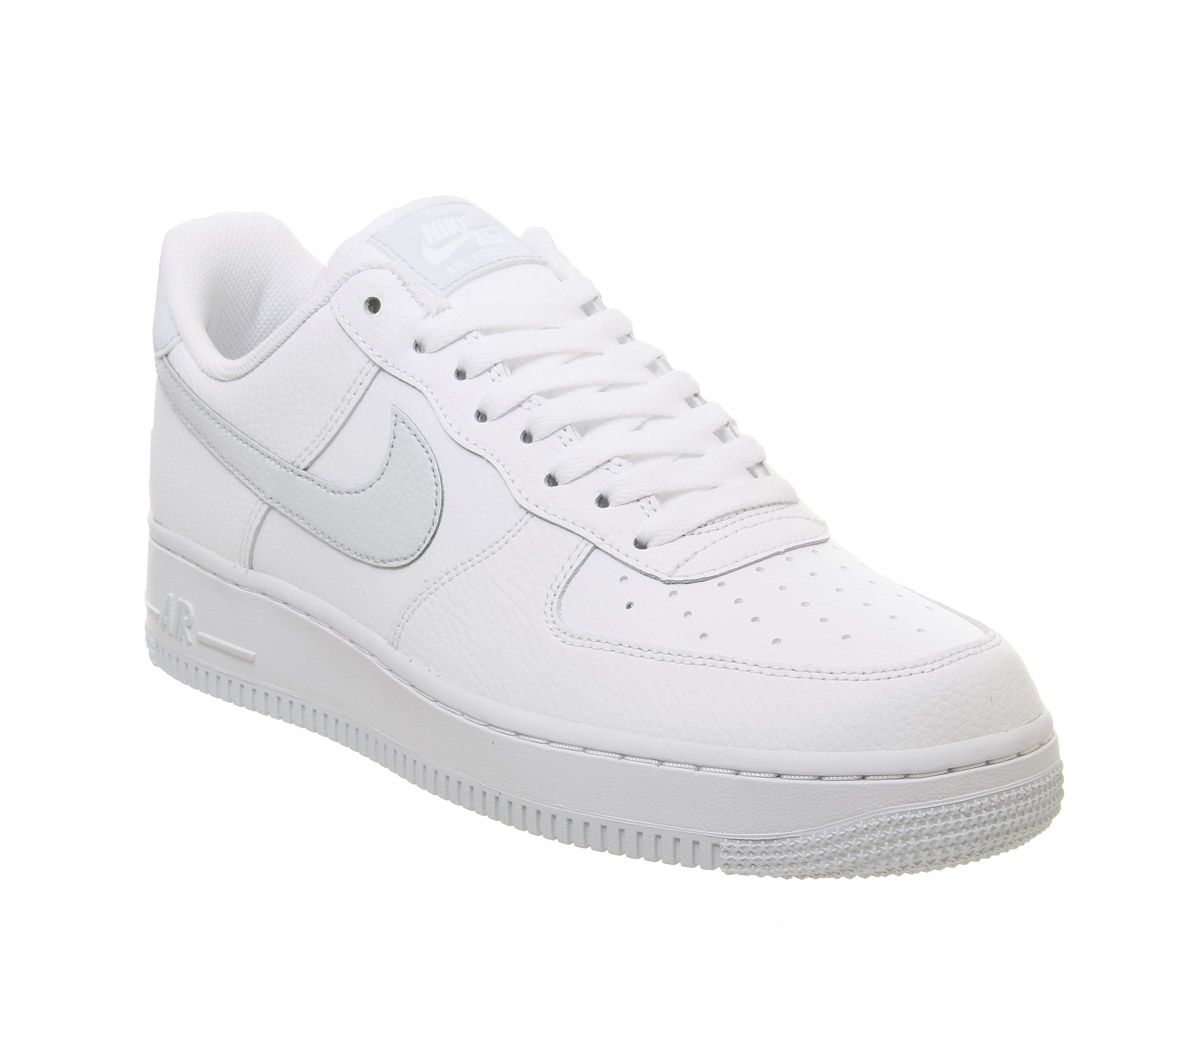 promo code 796d3 08c5b Nike Air Force 1  07 Trainers White Pure Platinum Metallic Silver ...